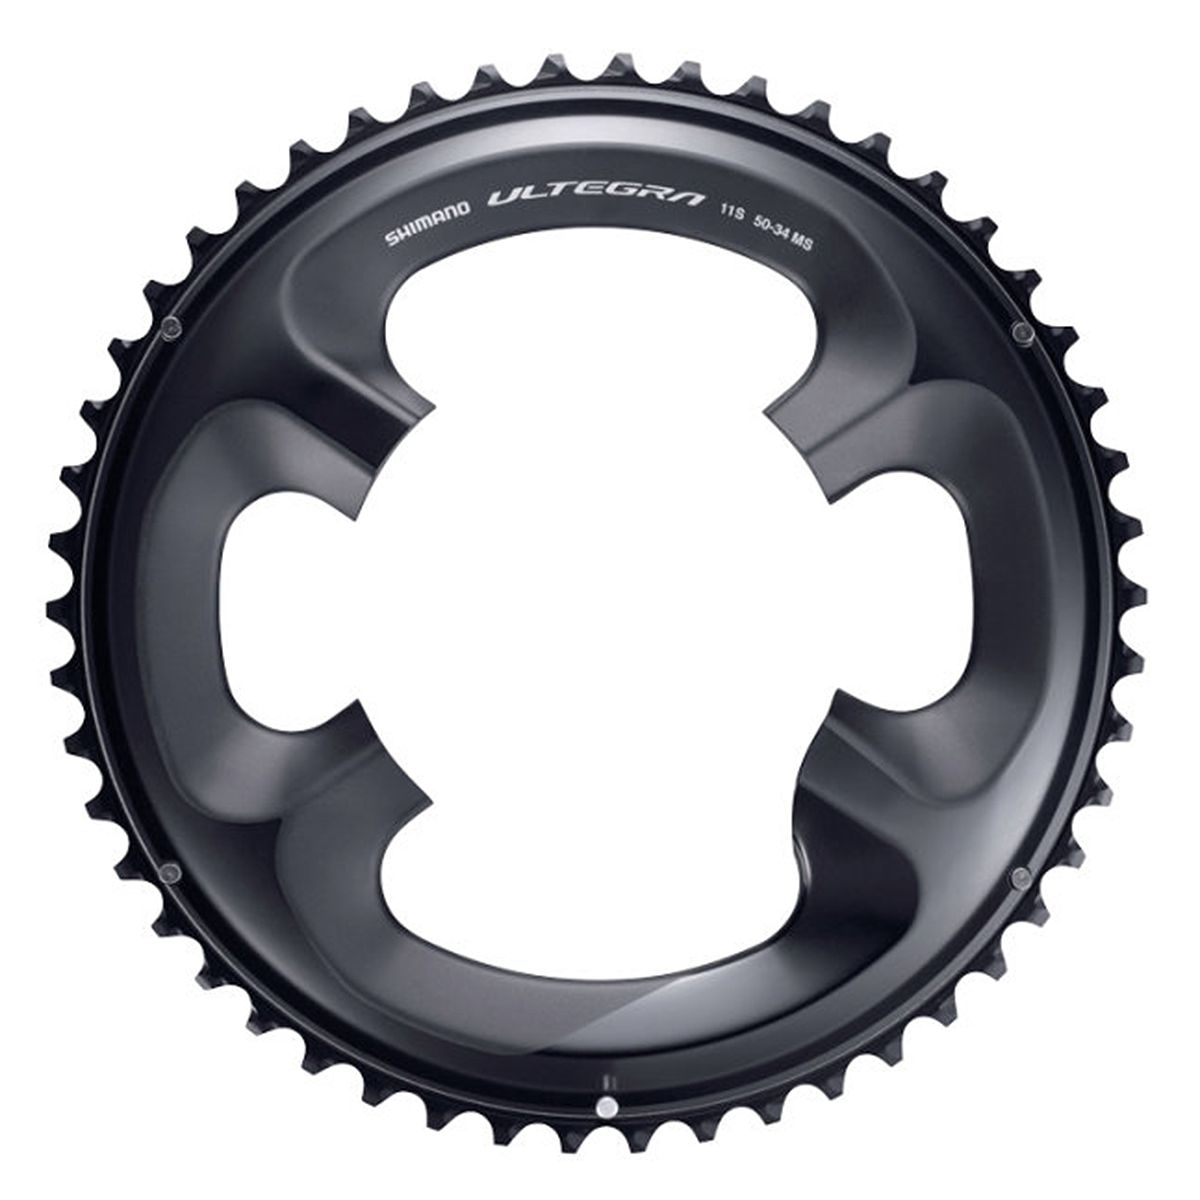 Shimano Ultegra R8000 46t 110mm 11-Speed Chainring for 36//52t or 36//46t